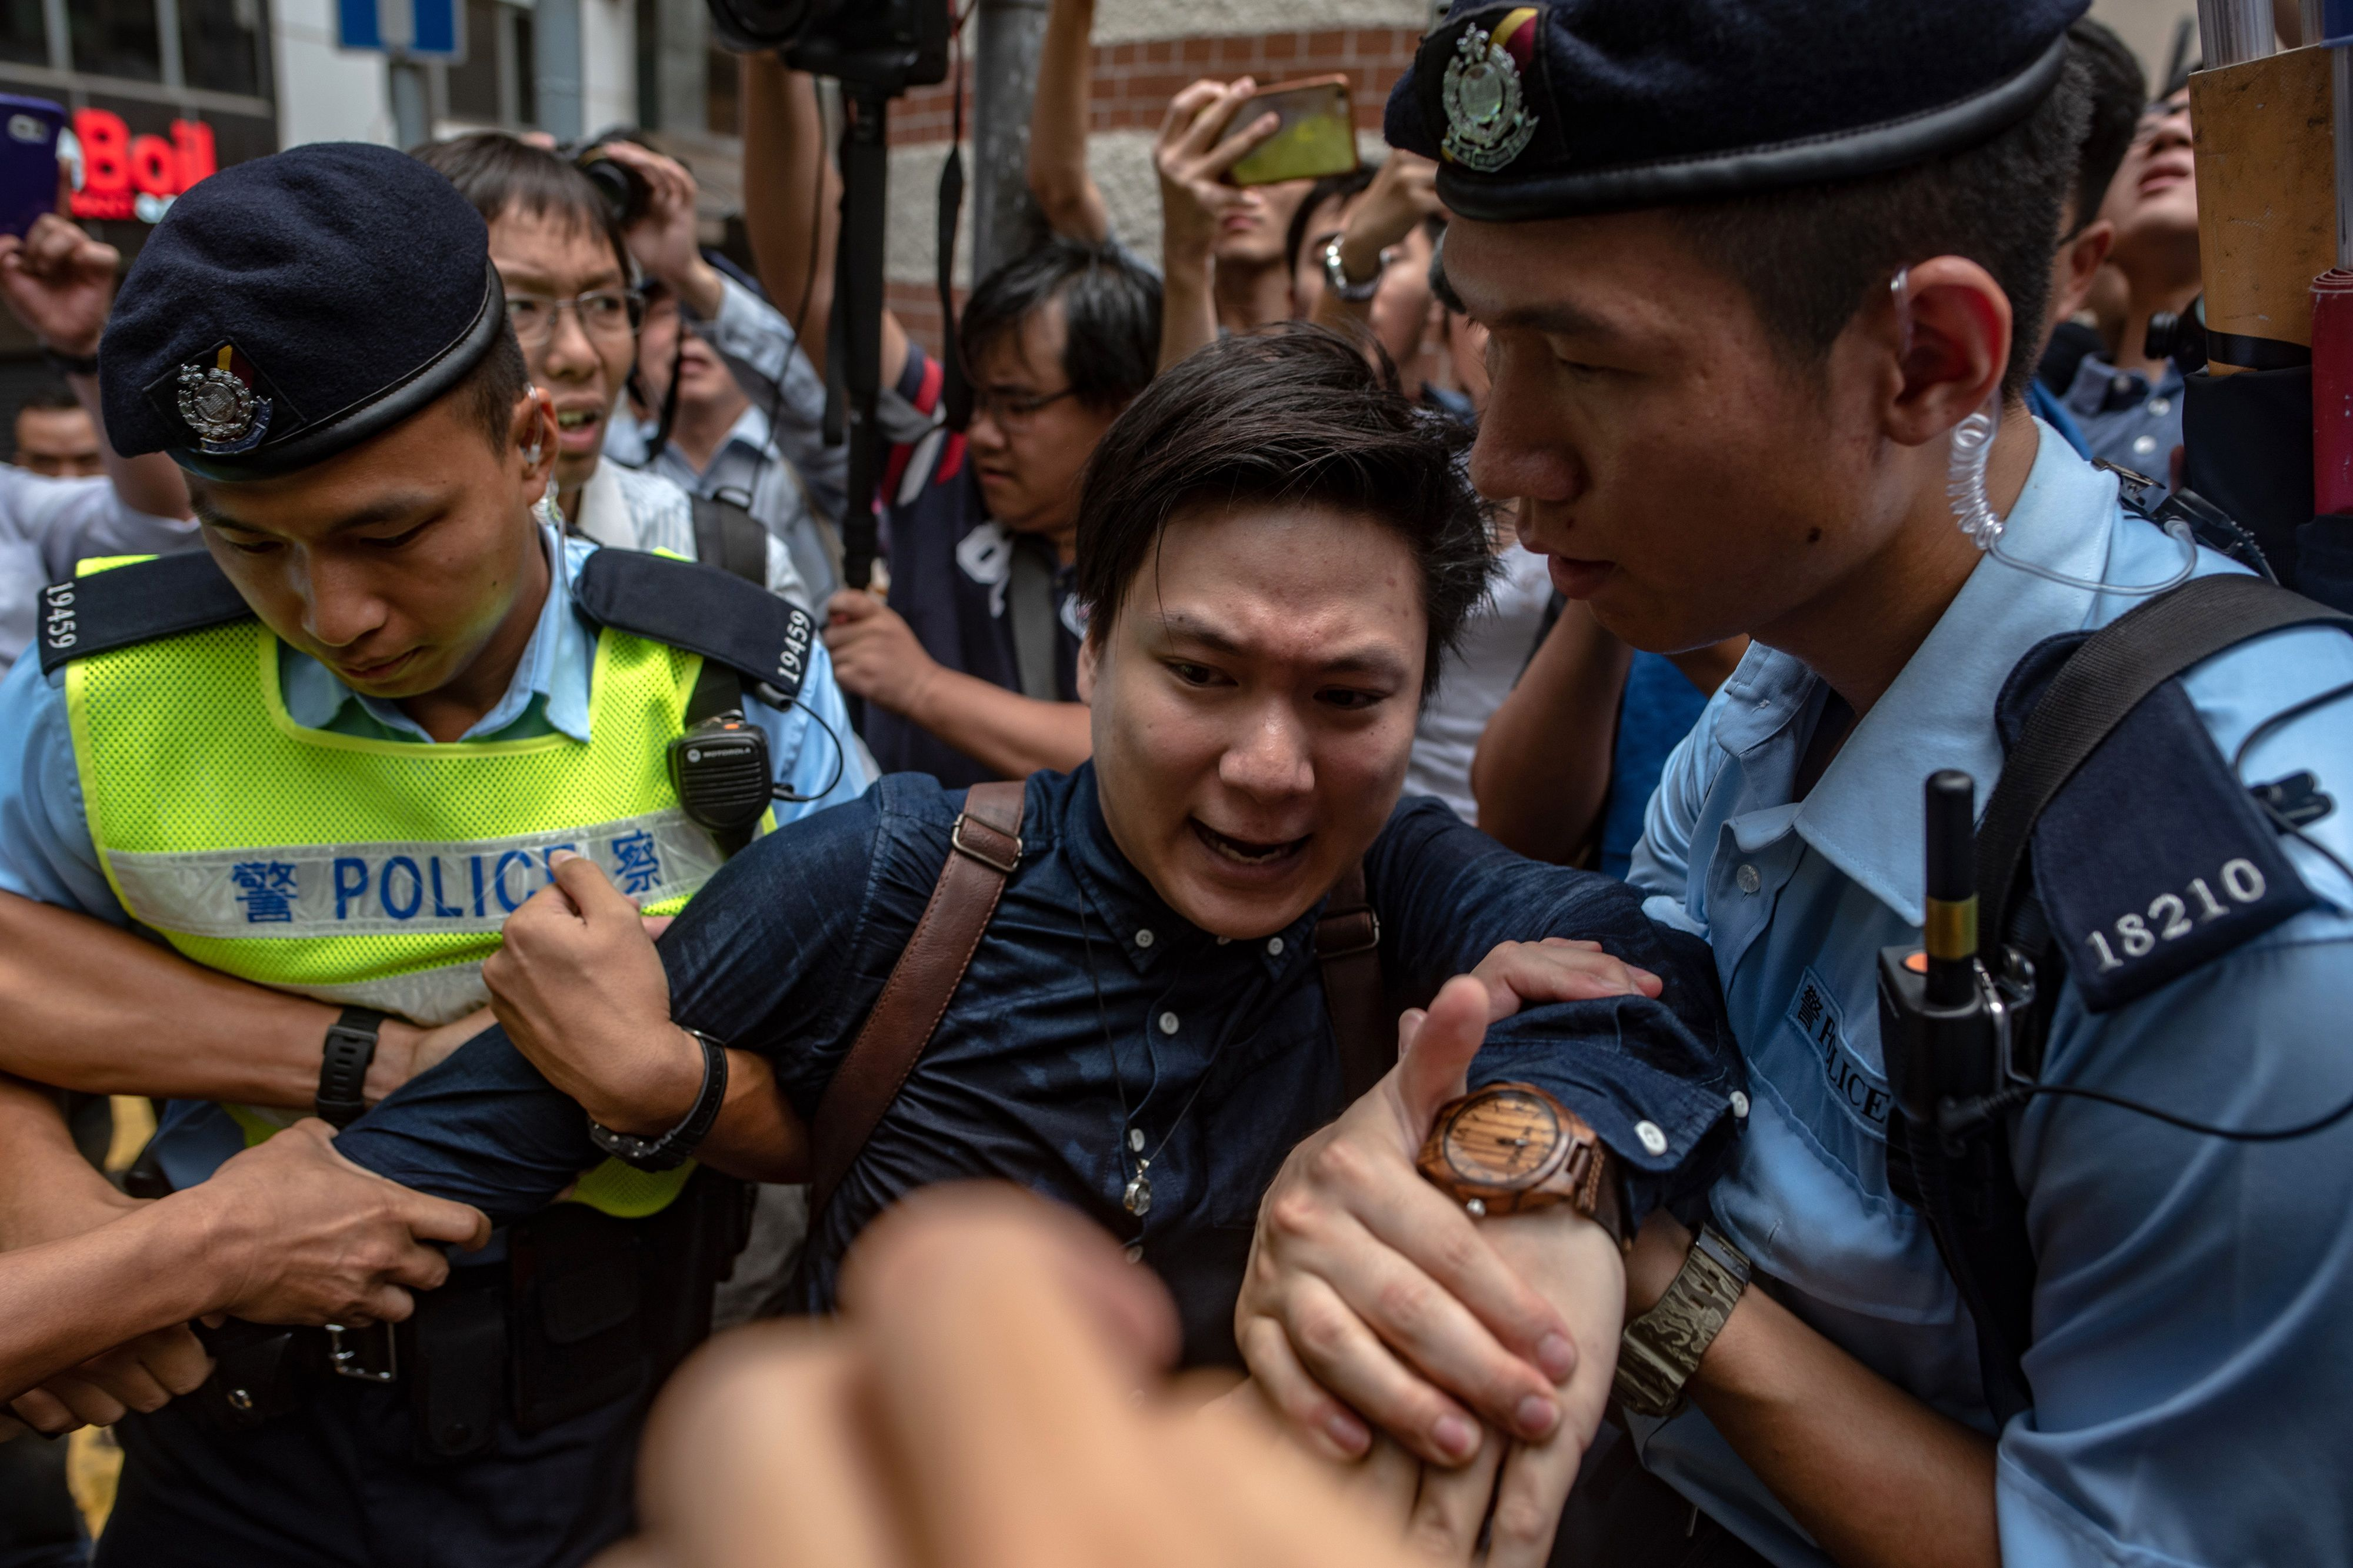 Pro-independence activist Wayne Chan is removed by police from a location outside the Foreign Correspondents' Club (FCC), as people protest ahead of a speech by pro-independence activist Andy Chan, in Hong Kong on August 14, 2018.